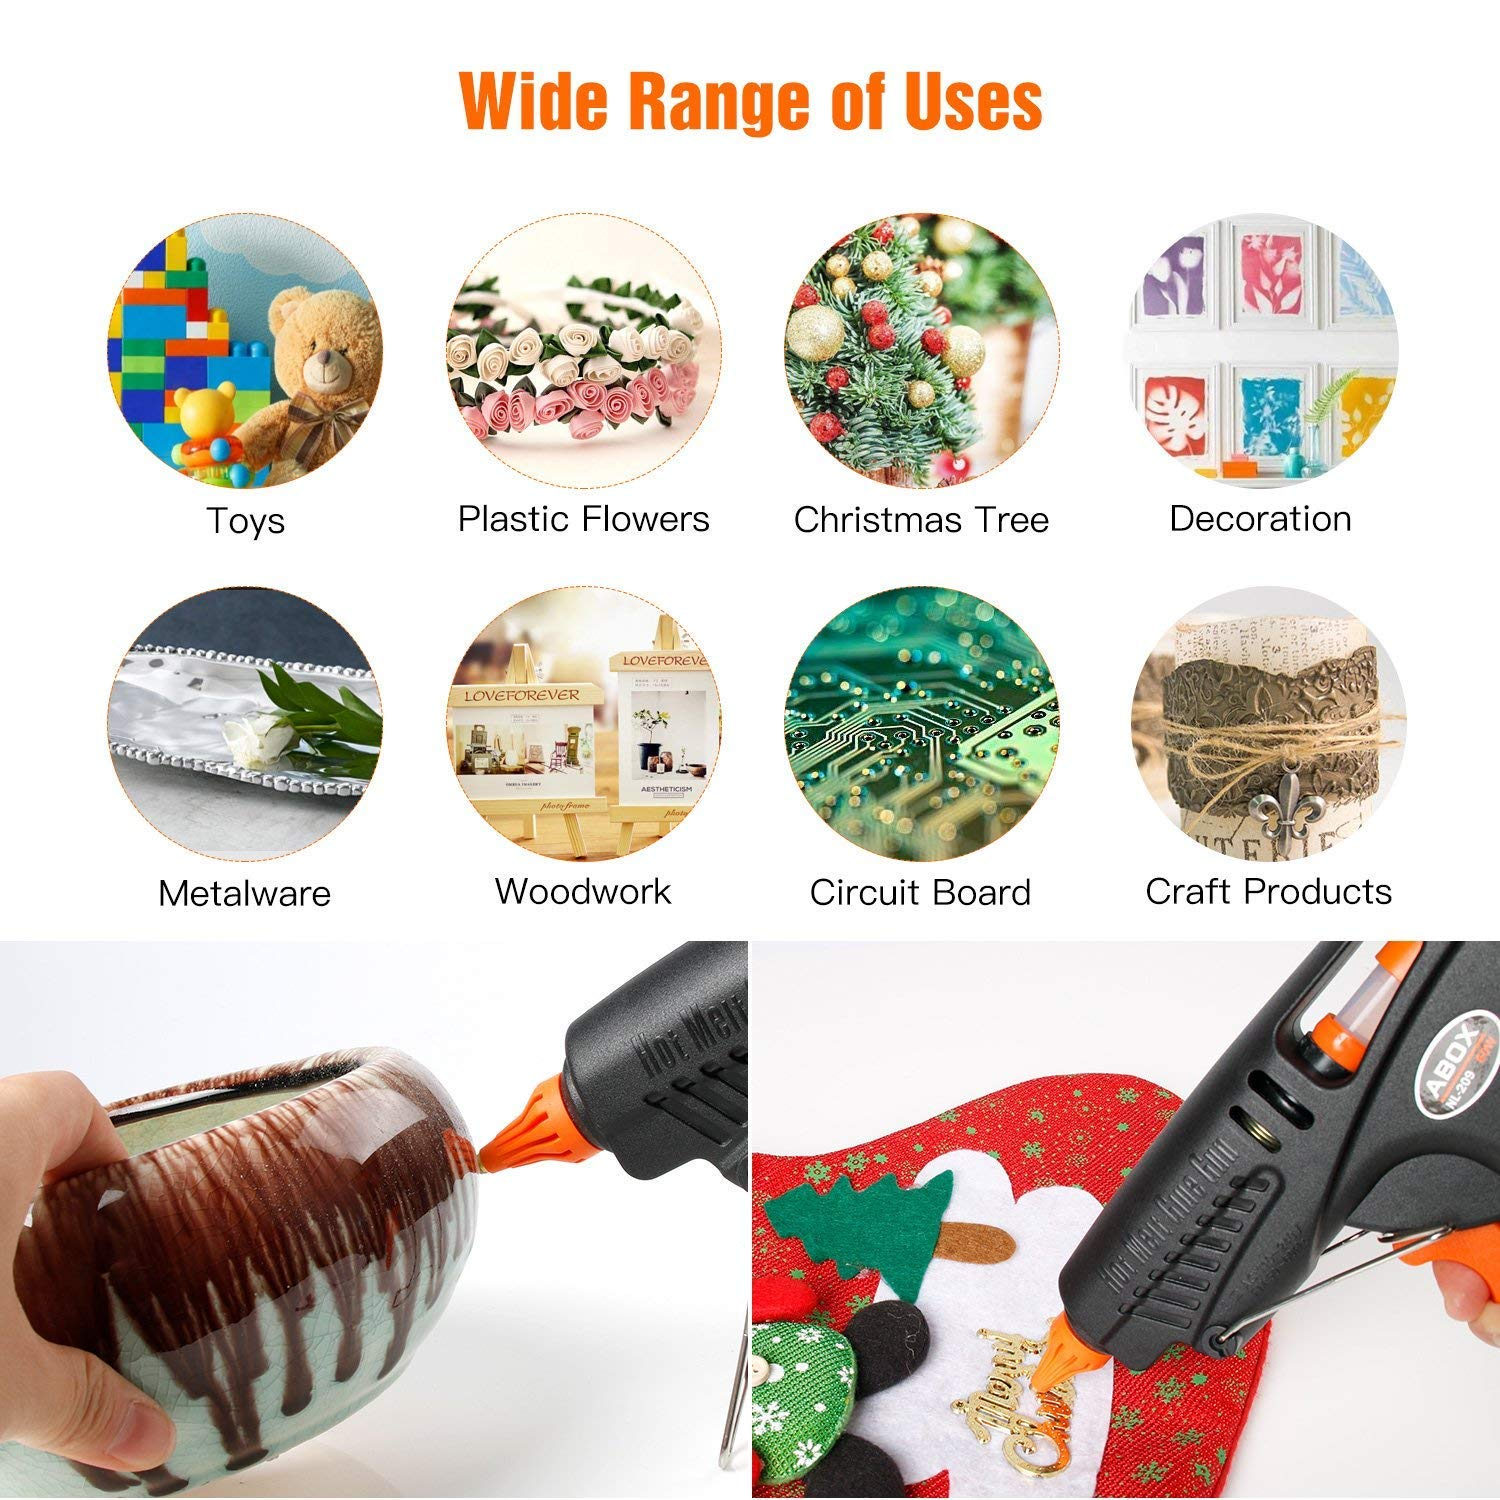 Hot Glue Gun, ABOX 60W Thermostat Hot Melt Glue Gun, Rapid Preheating with PTC Heating Technology,15 Pcs Premium Glue Sticks,Copper Nozzle and ON-Off Switch, DIY Arts &Crafts Projects, Quick Repairs by GooBang Doo (Image #5)